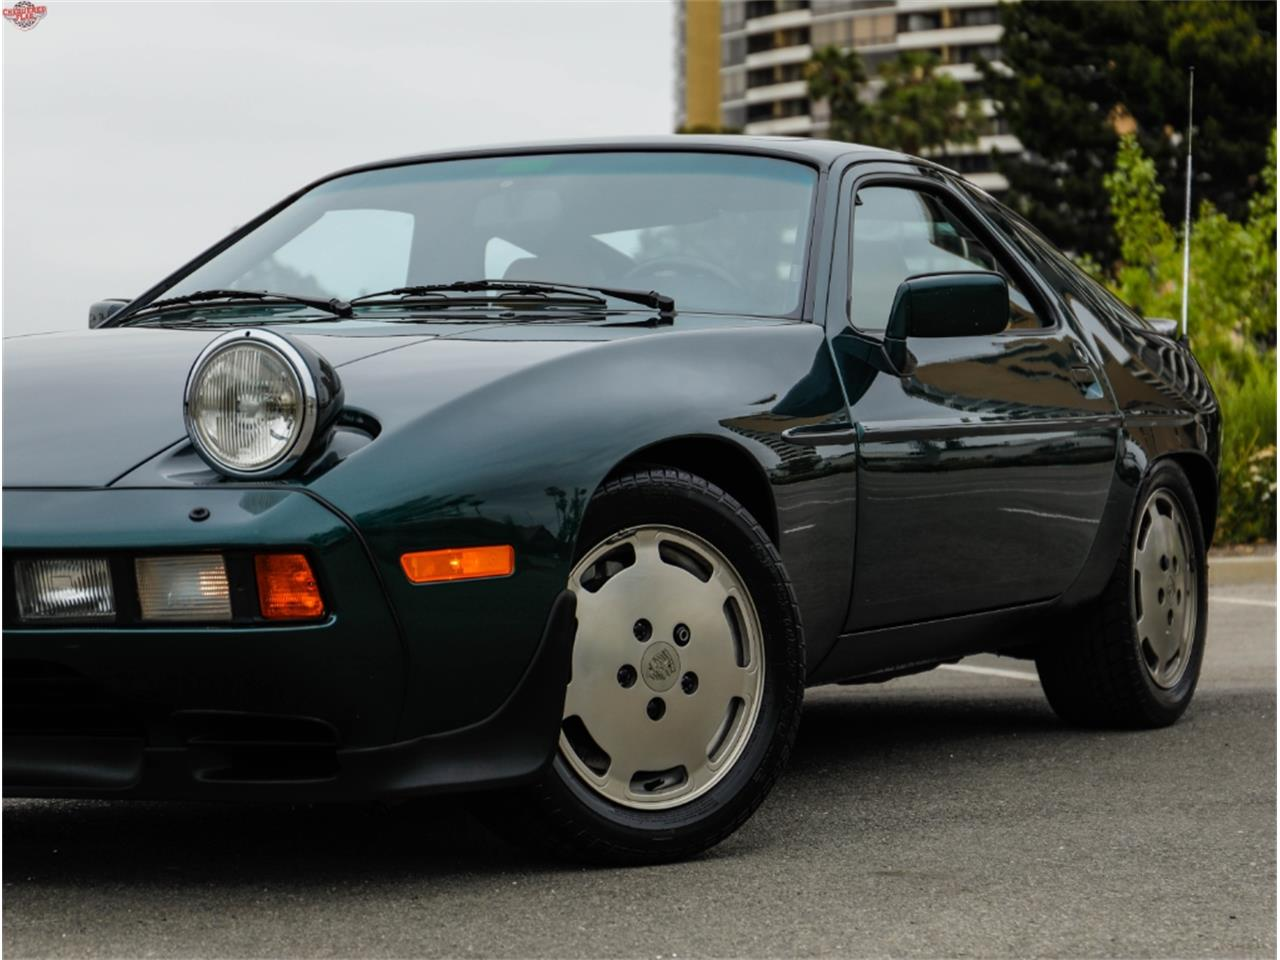 Large Picture of '84 Porsche 928S located in California - $32,500.00 Offered by Chequered Flag International - NR3G